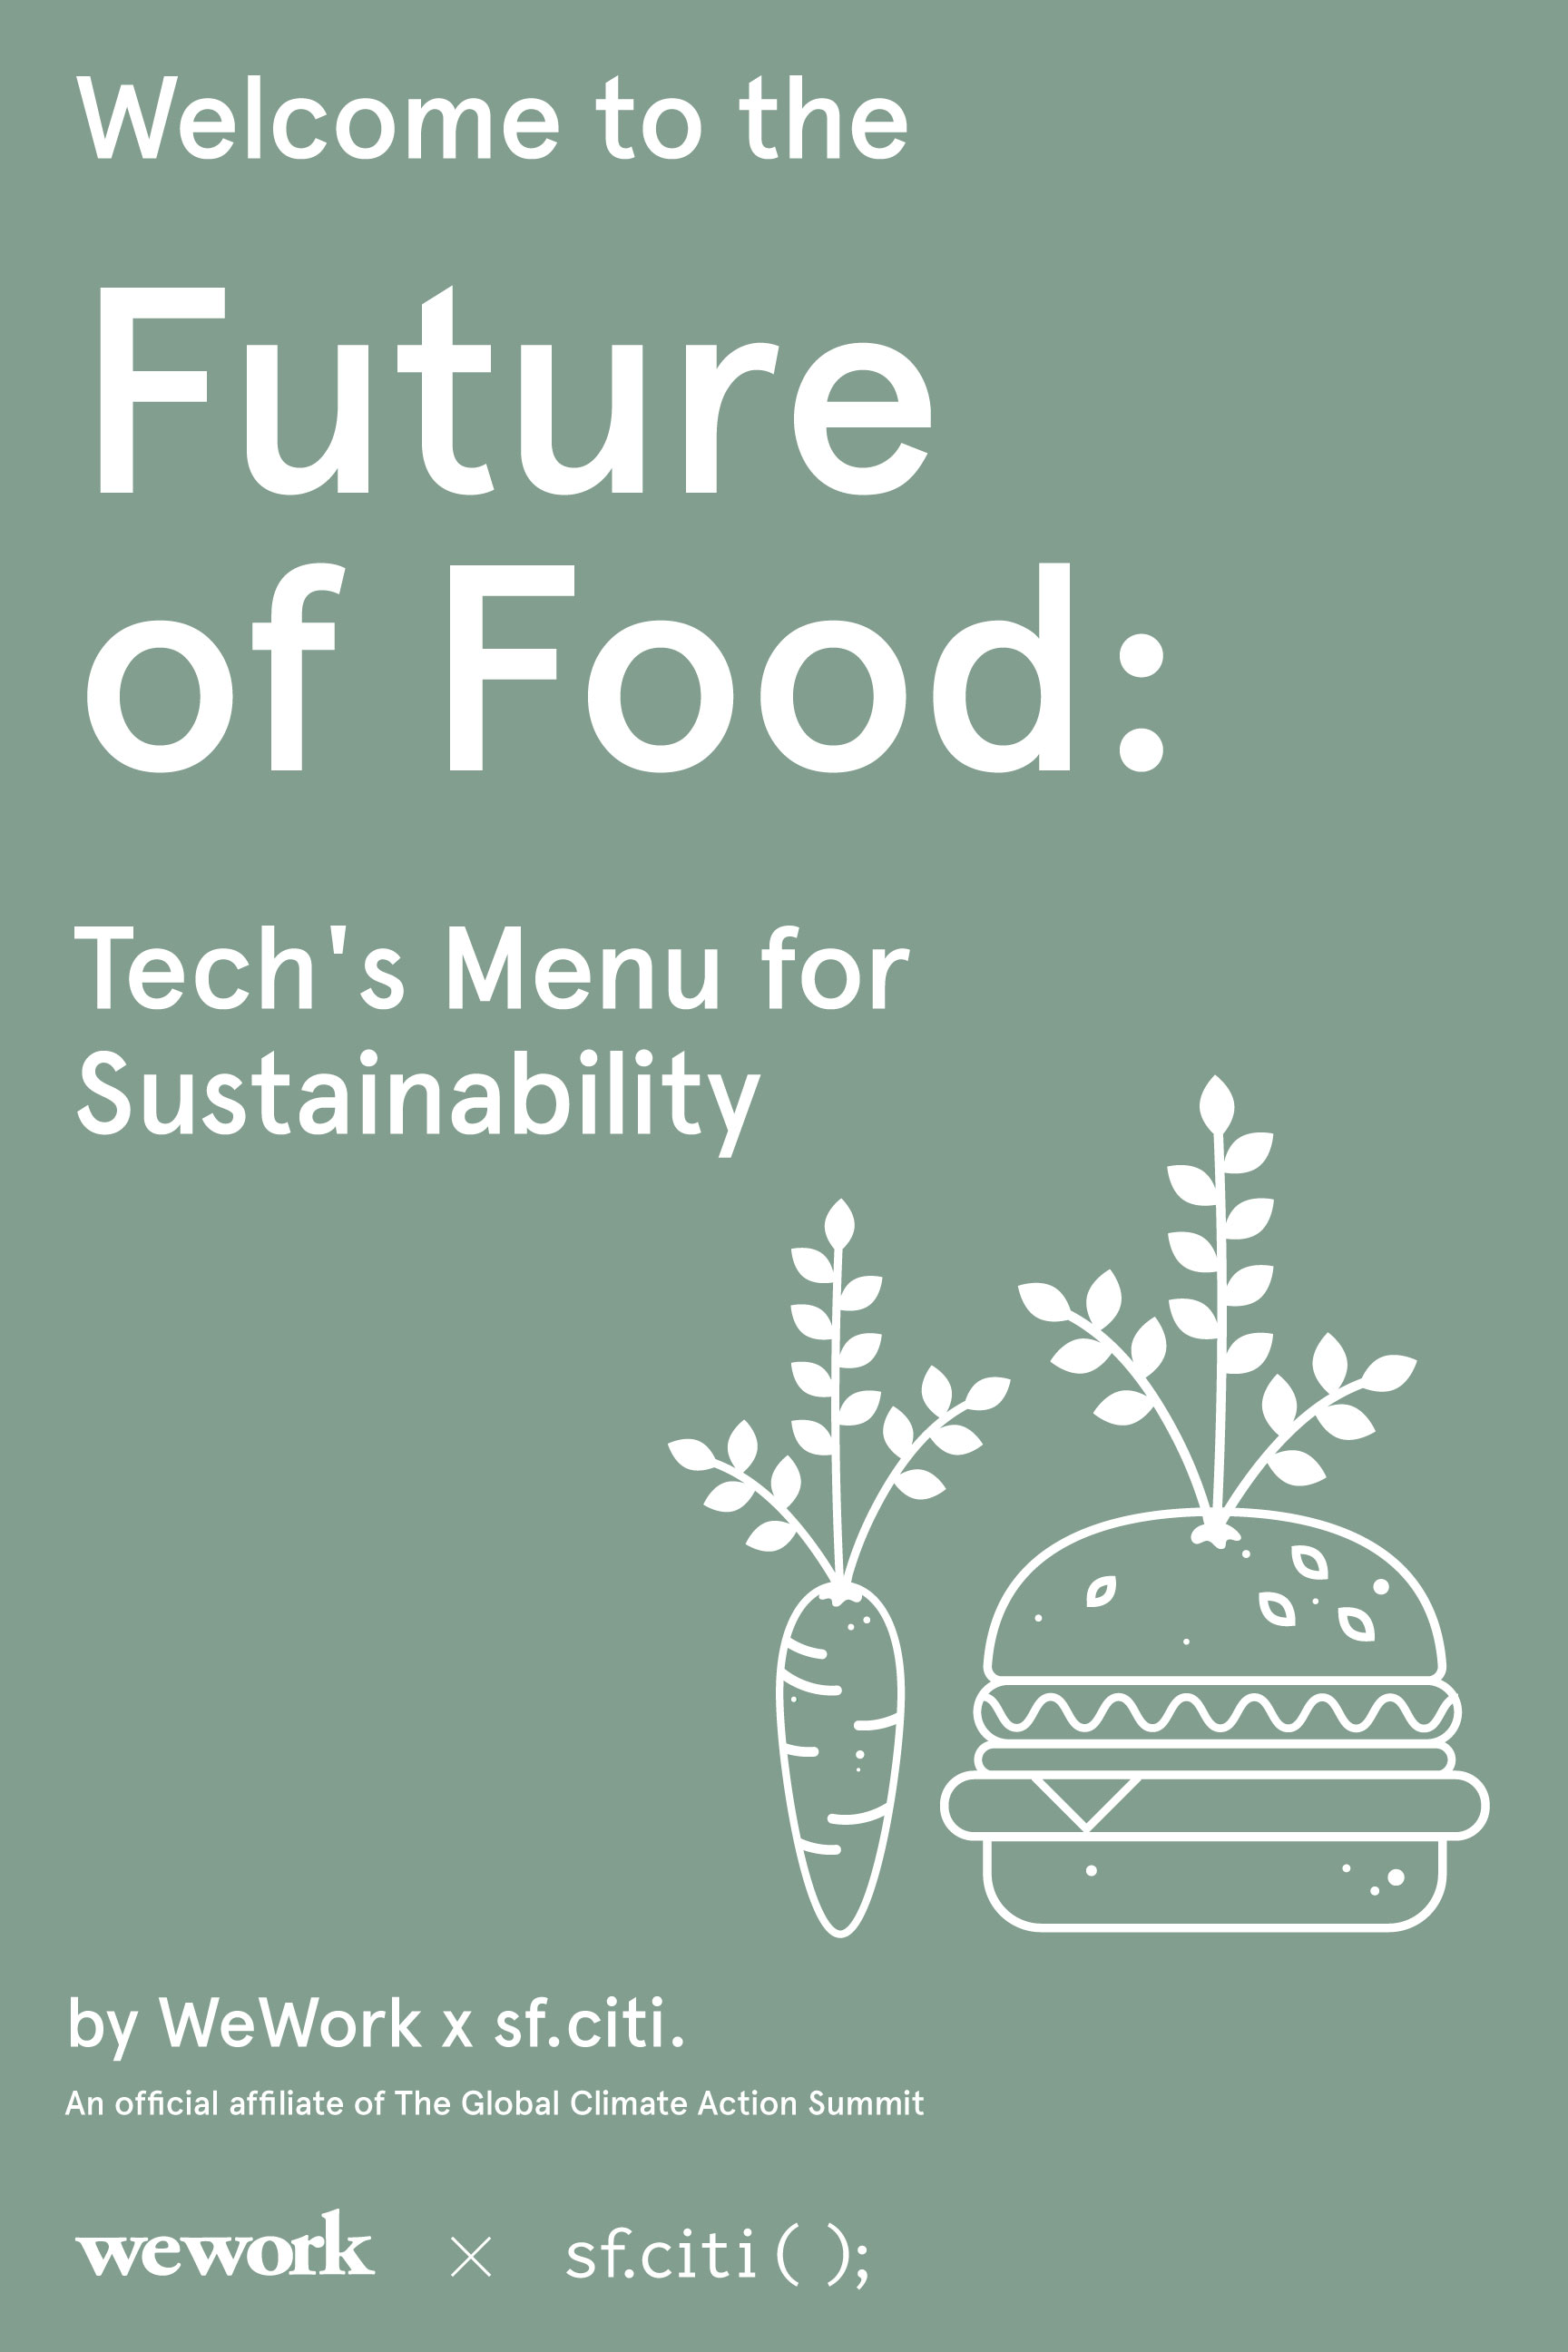 WeWork_FutureOfFood_090718_Welcome-Poster_v2.jpg